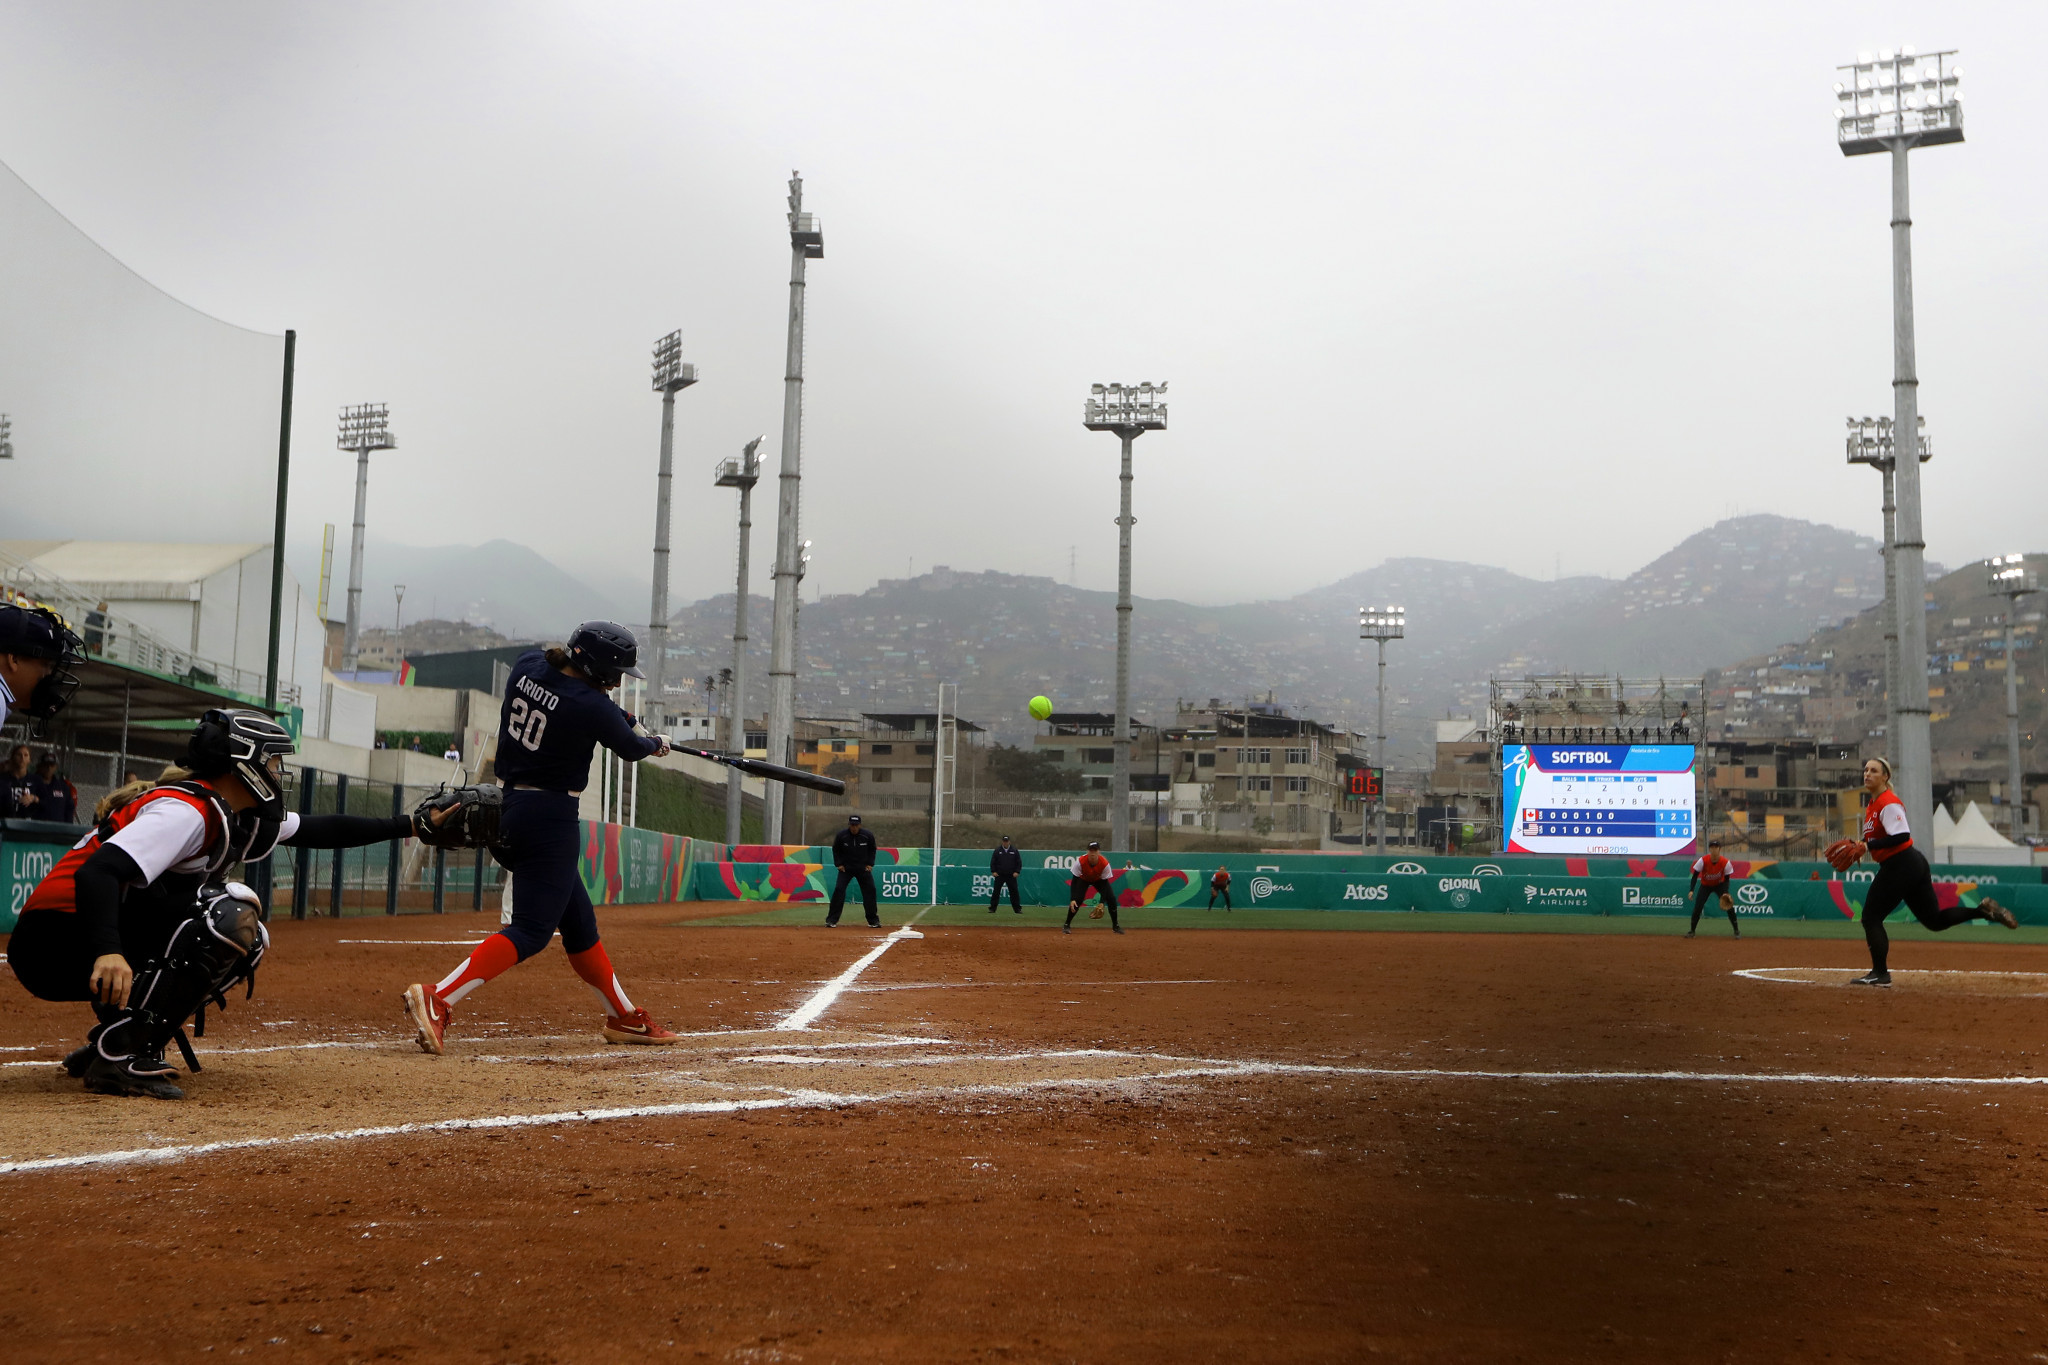 The Villa Maria del Triunfo complex hosted softball at the Lima 2019 Pan American Games ©Getty Images